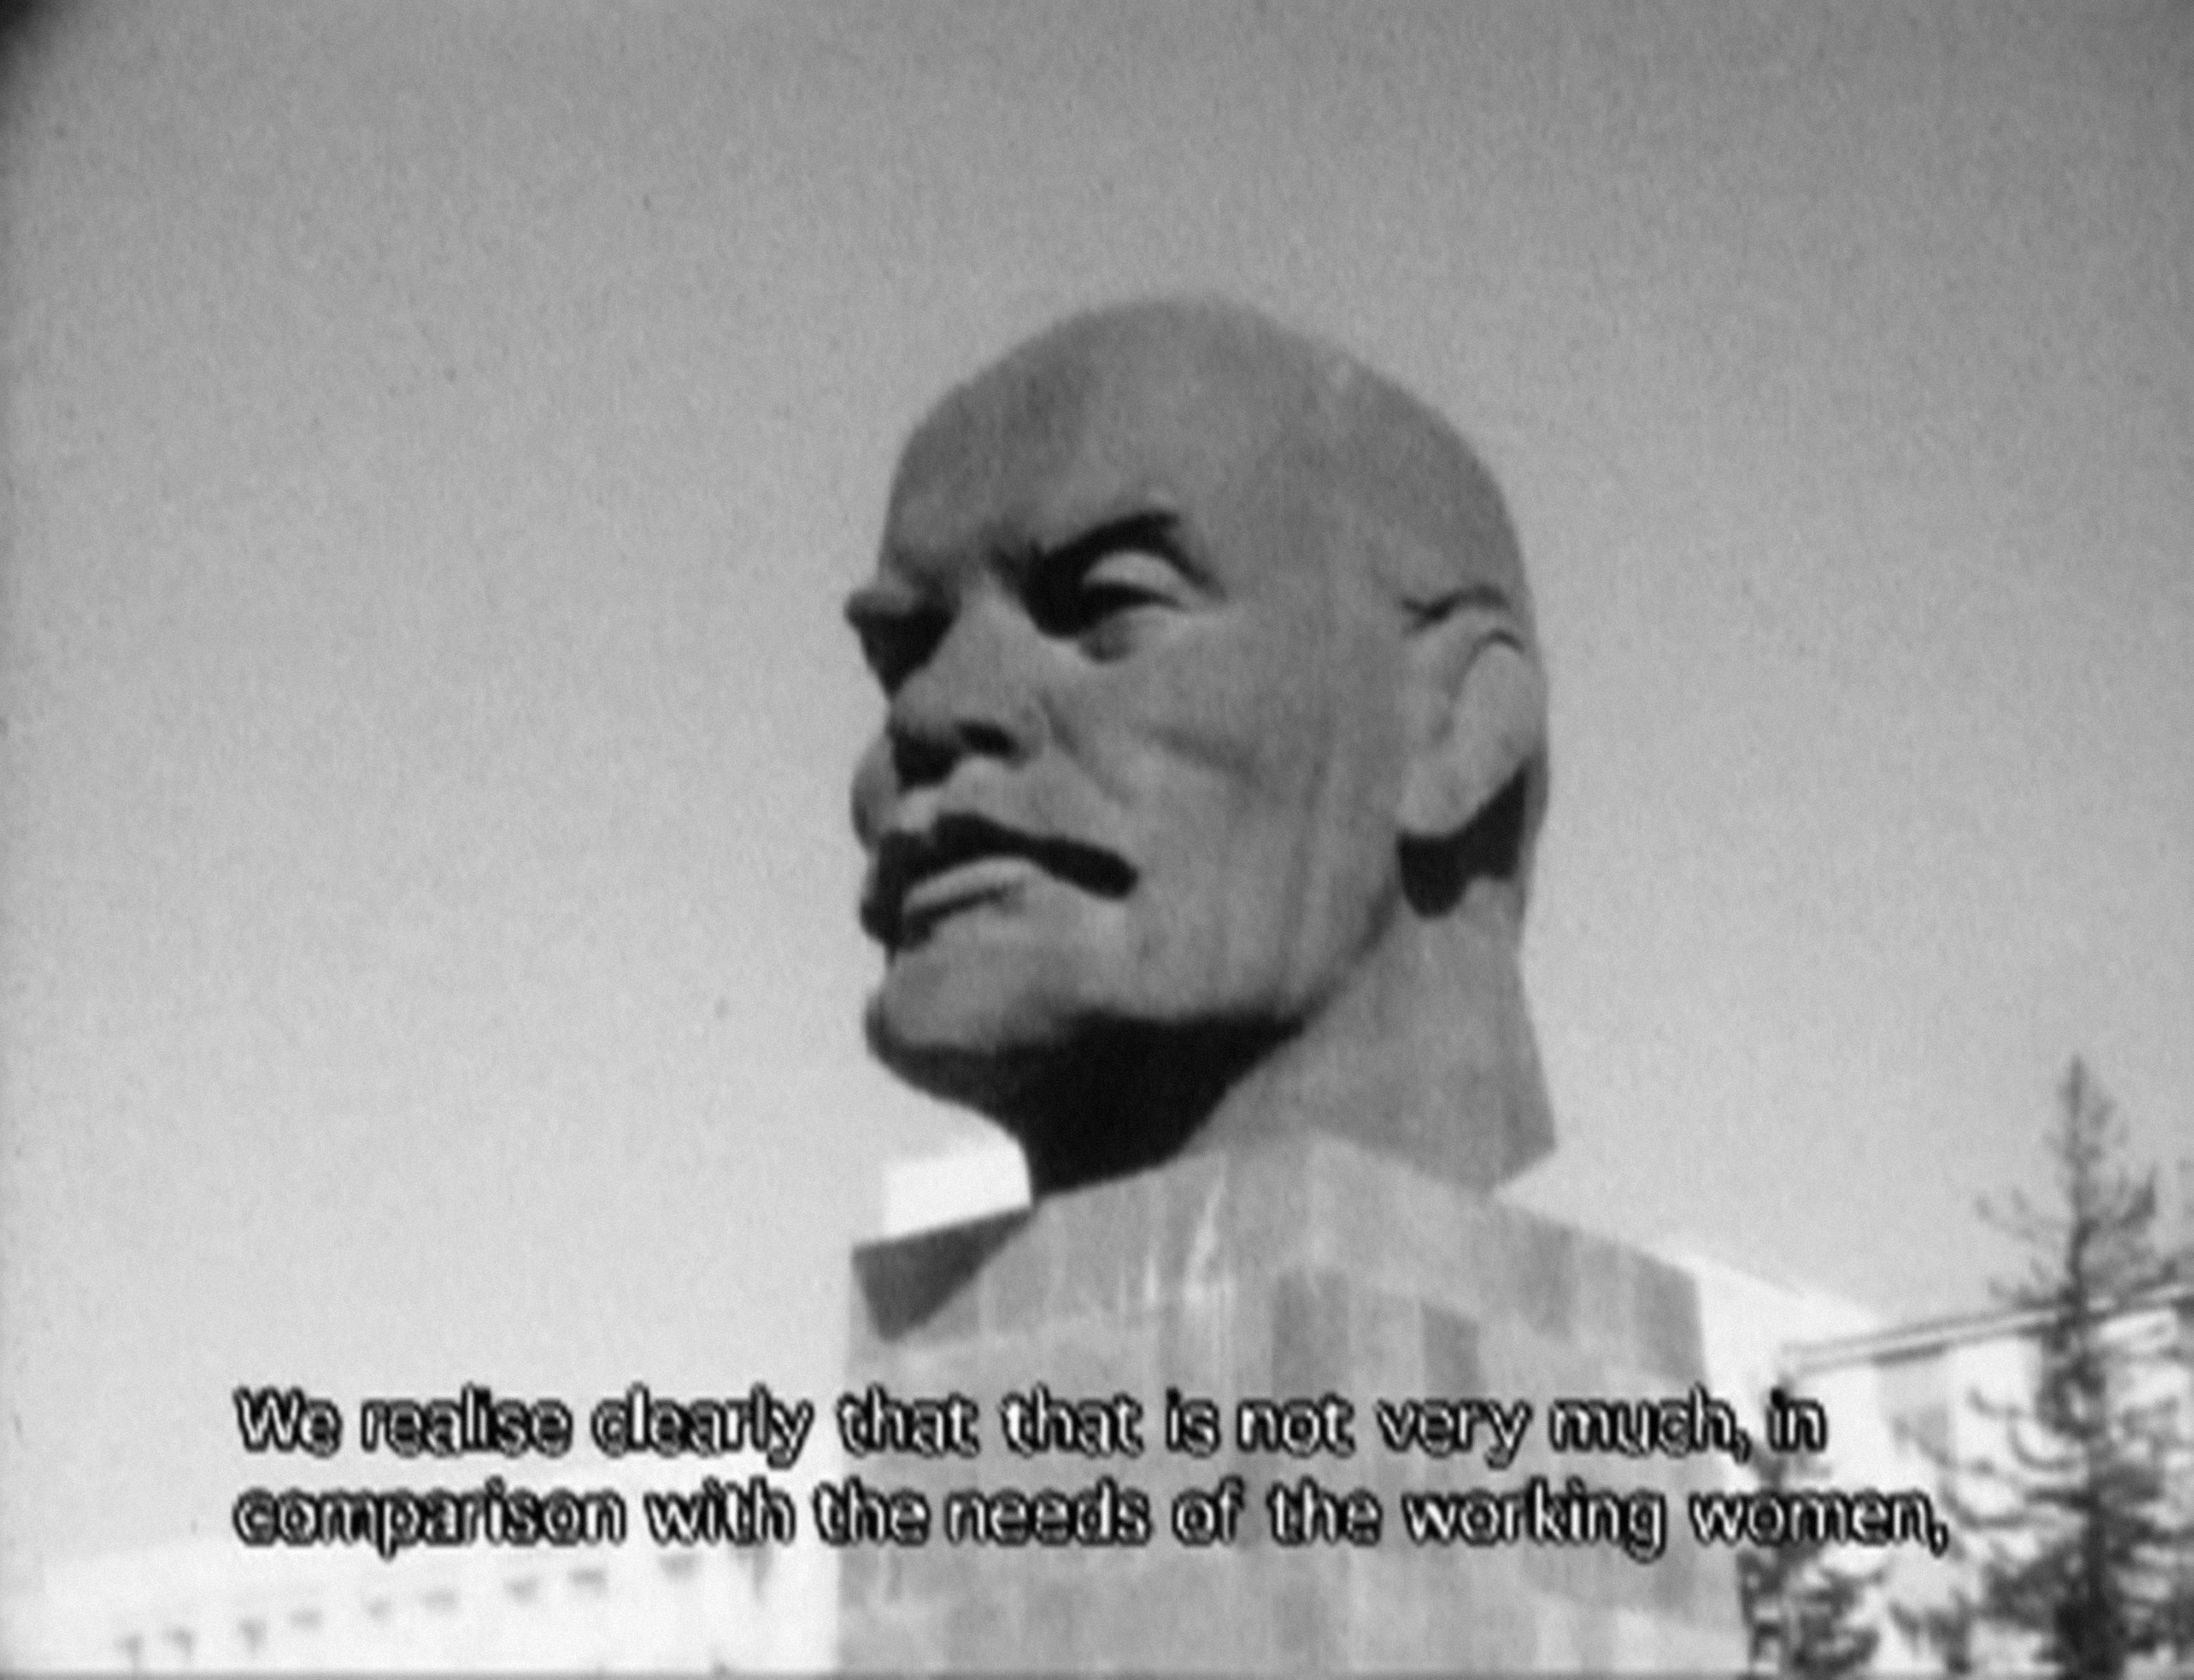 """A black-and-white image still shows a large stone bust of Vladimir Lenin's head with closed caption text reading """"We realise clearly that that is not very much, in comparison with the needs of the working women,."""""""